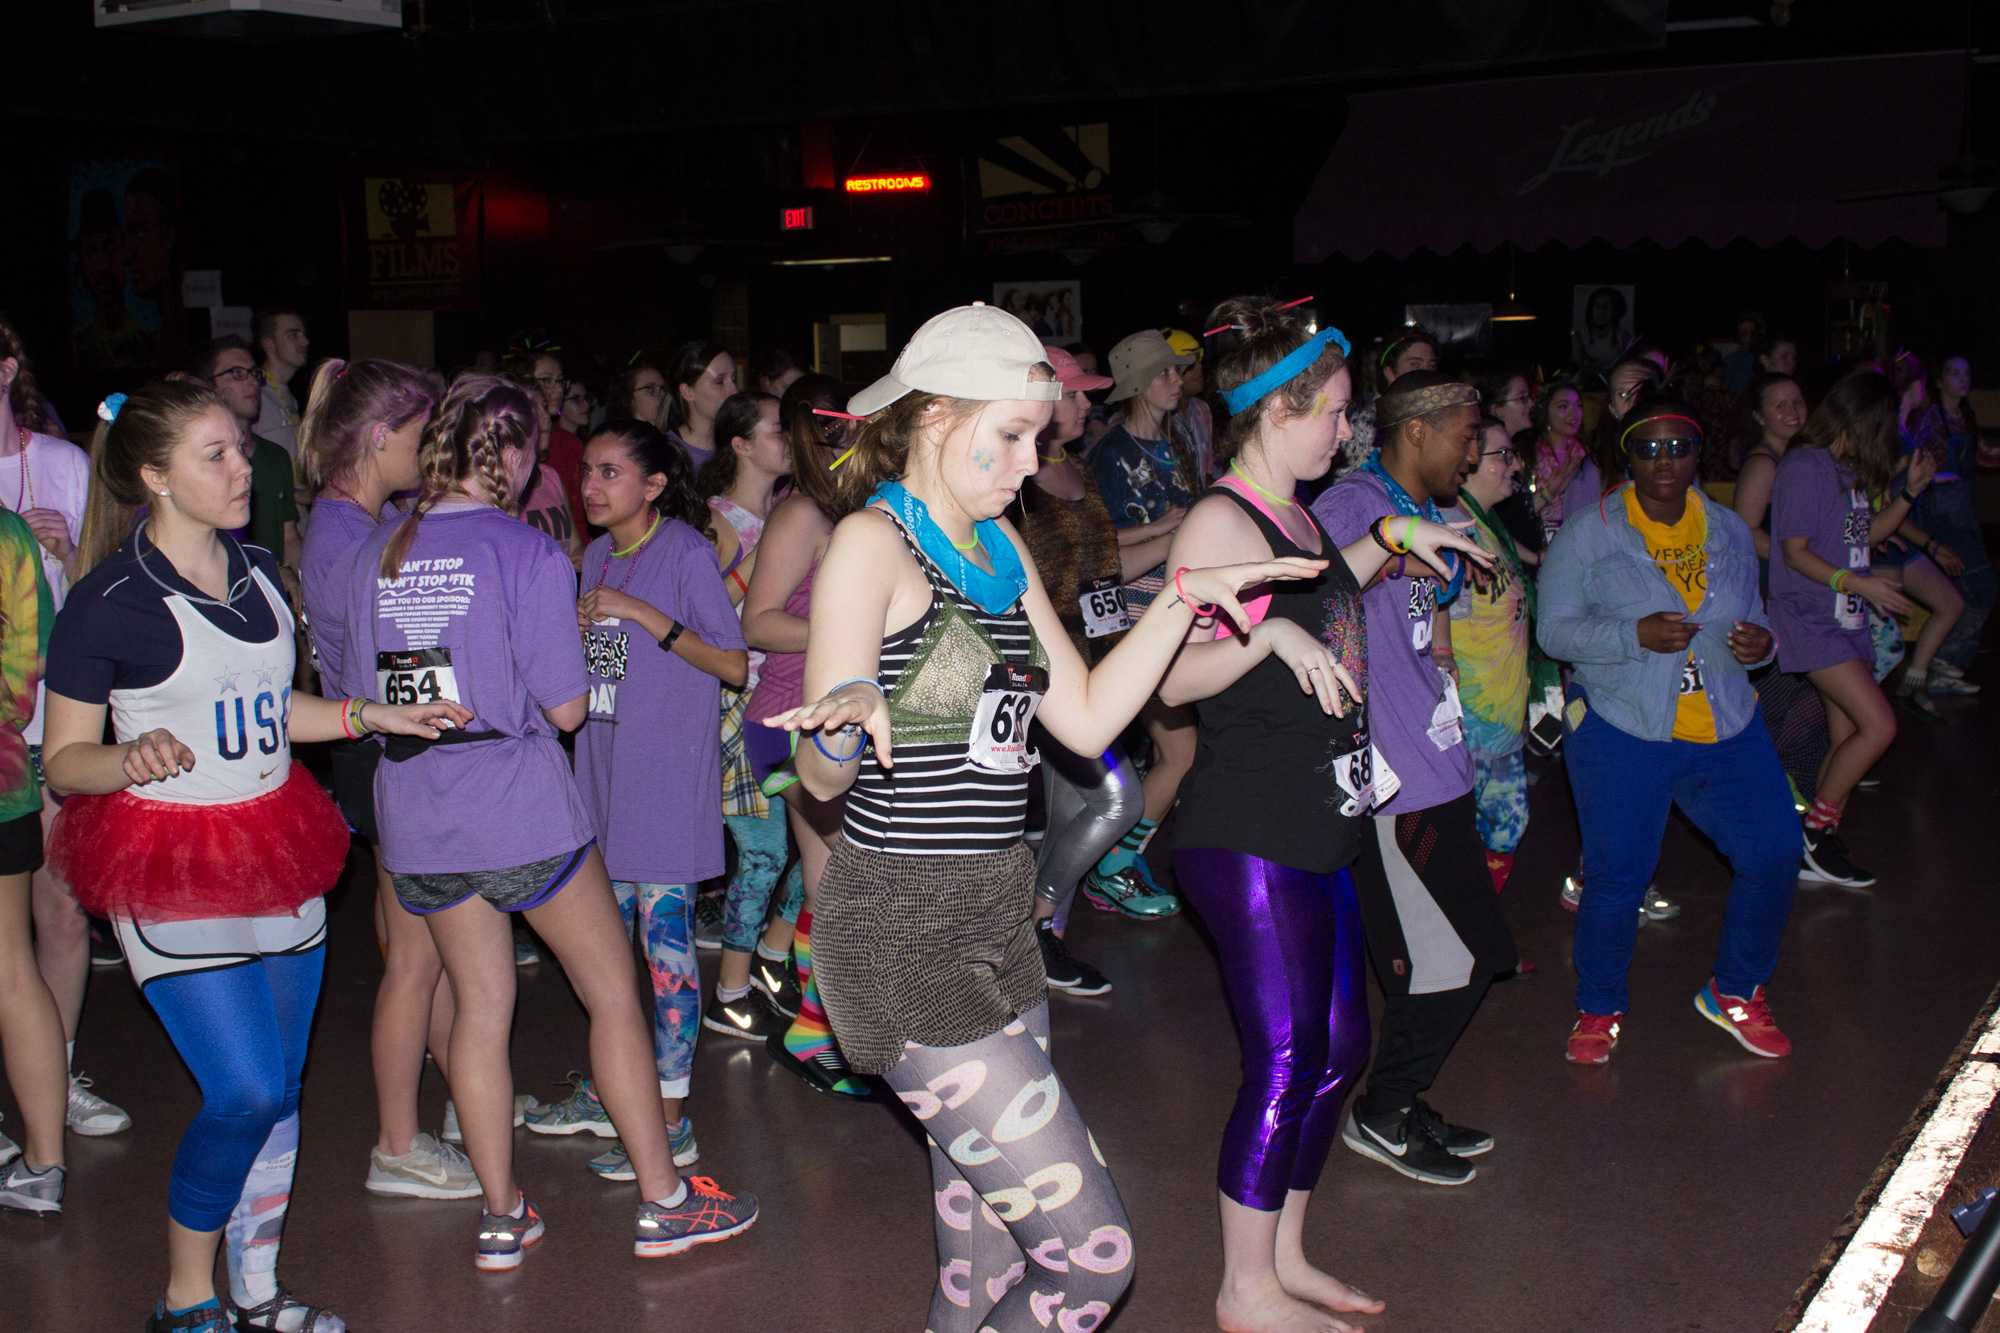 Fourteenth Annual Dance Marathon raises funds for high country youth